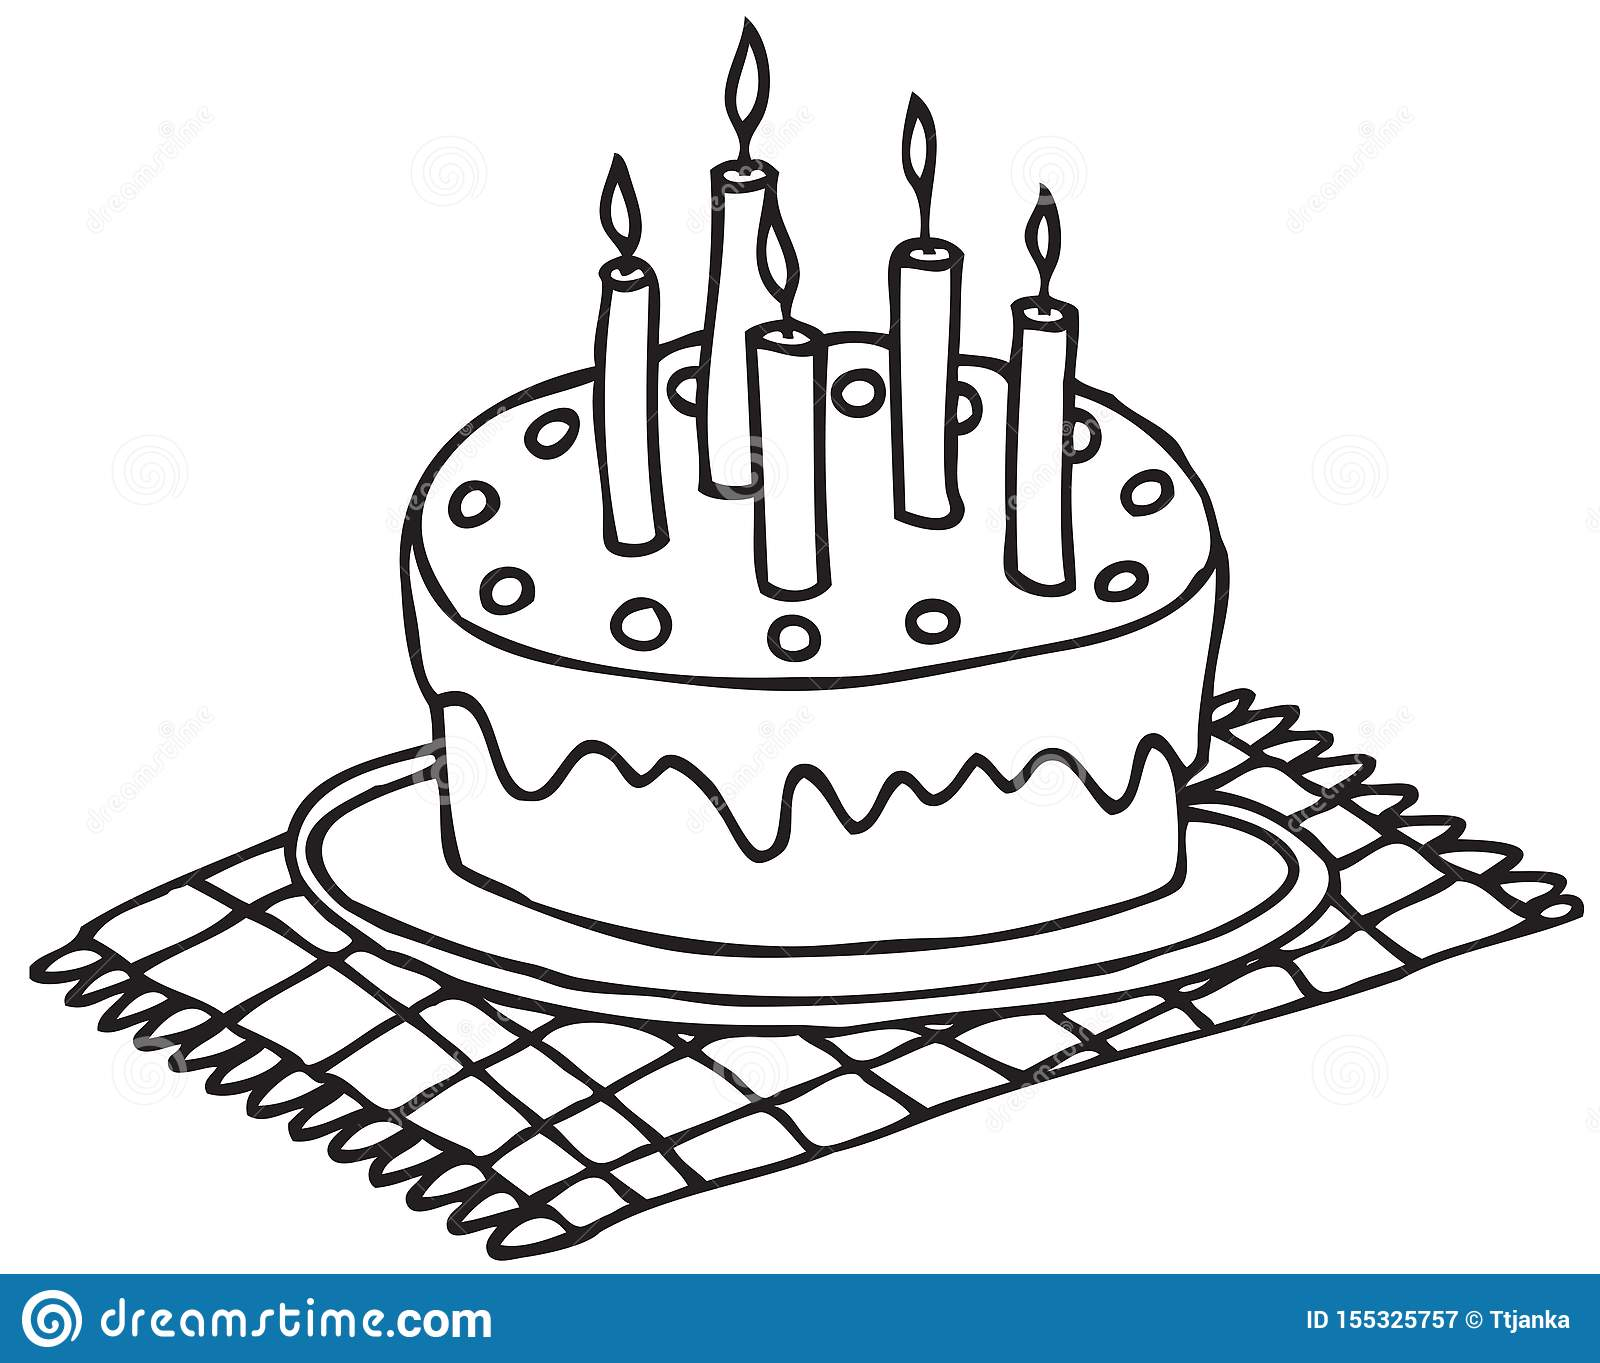 Terrific Hand Drawing Birthday Cake With Candles Stock Vector Personalised Birthday Cards Paralily Jamesorg